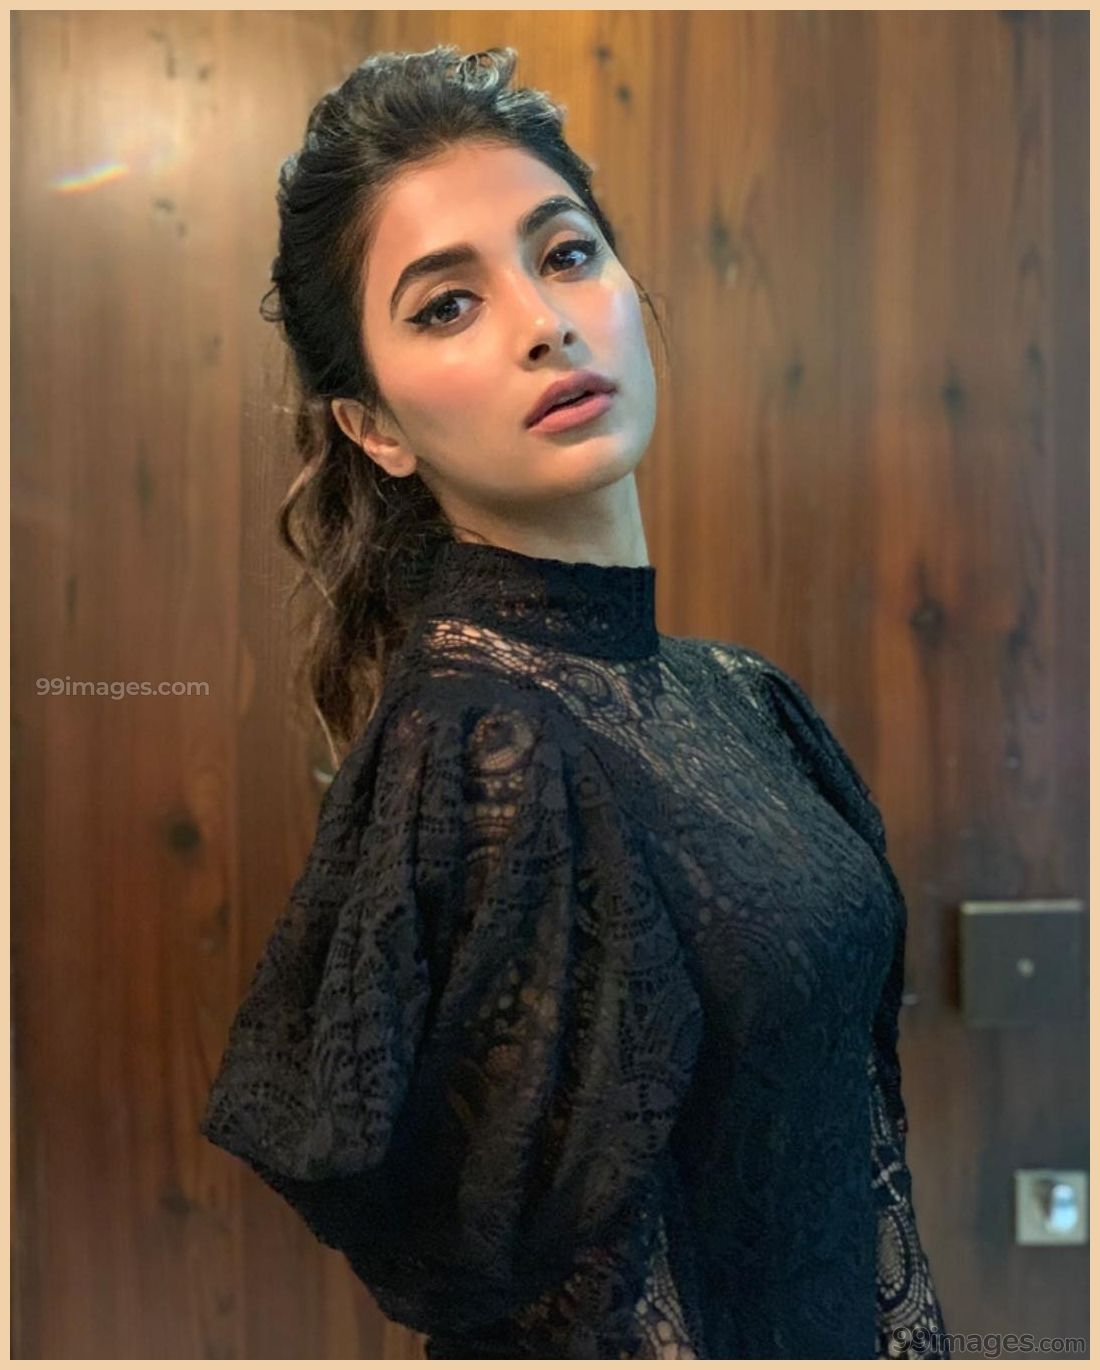 Pooja Hegde Hot HD Photos & Wallpapers For Mobile (1080p